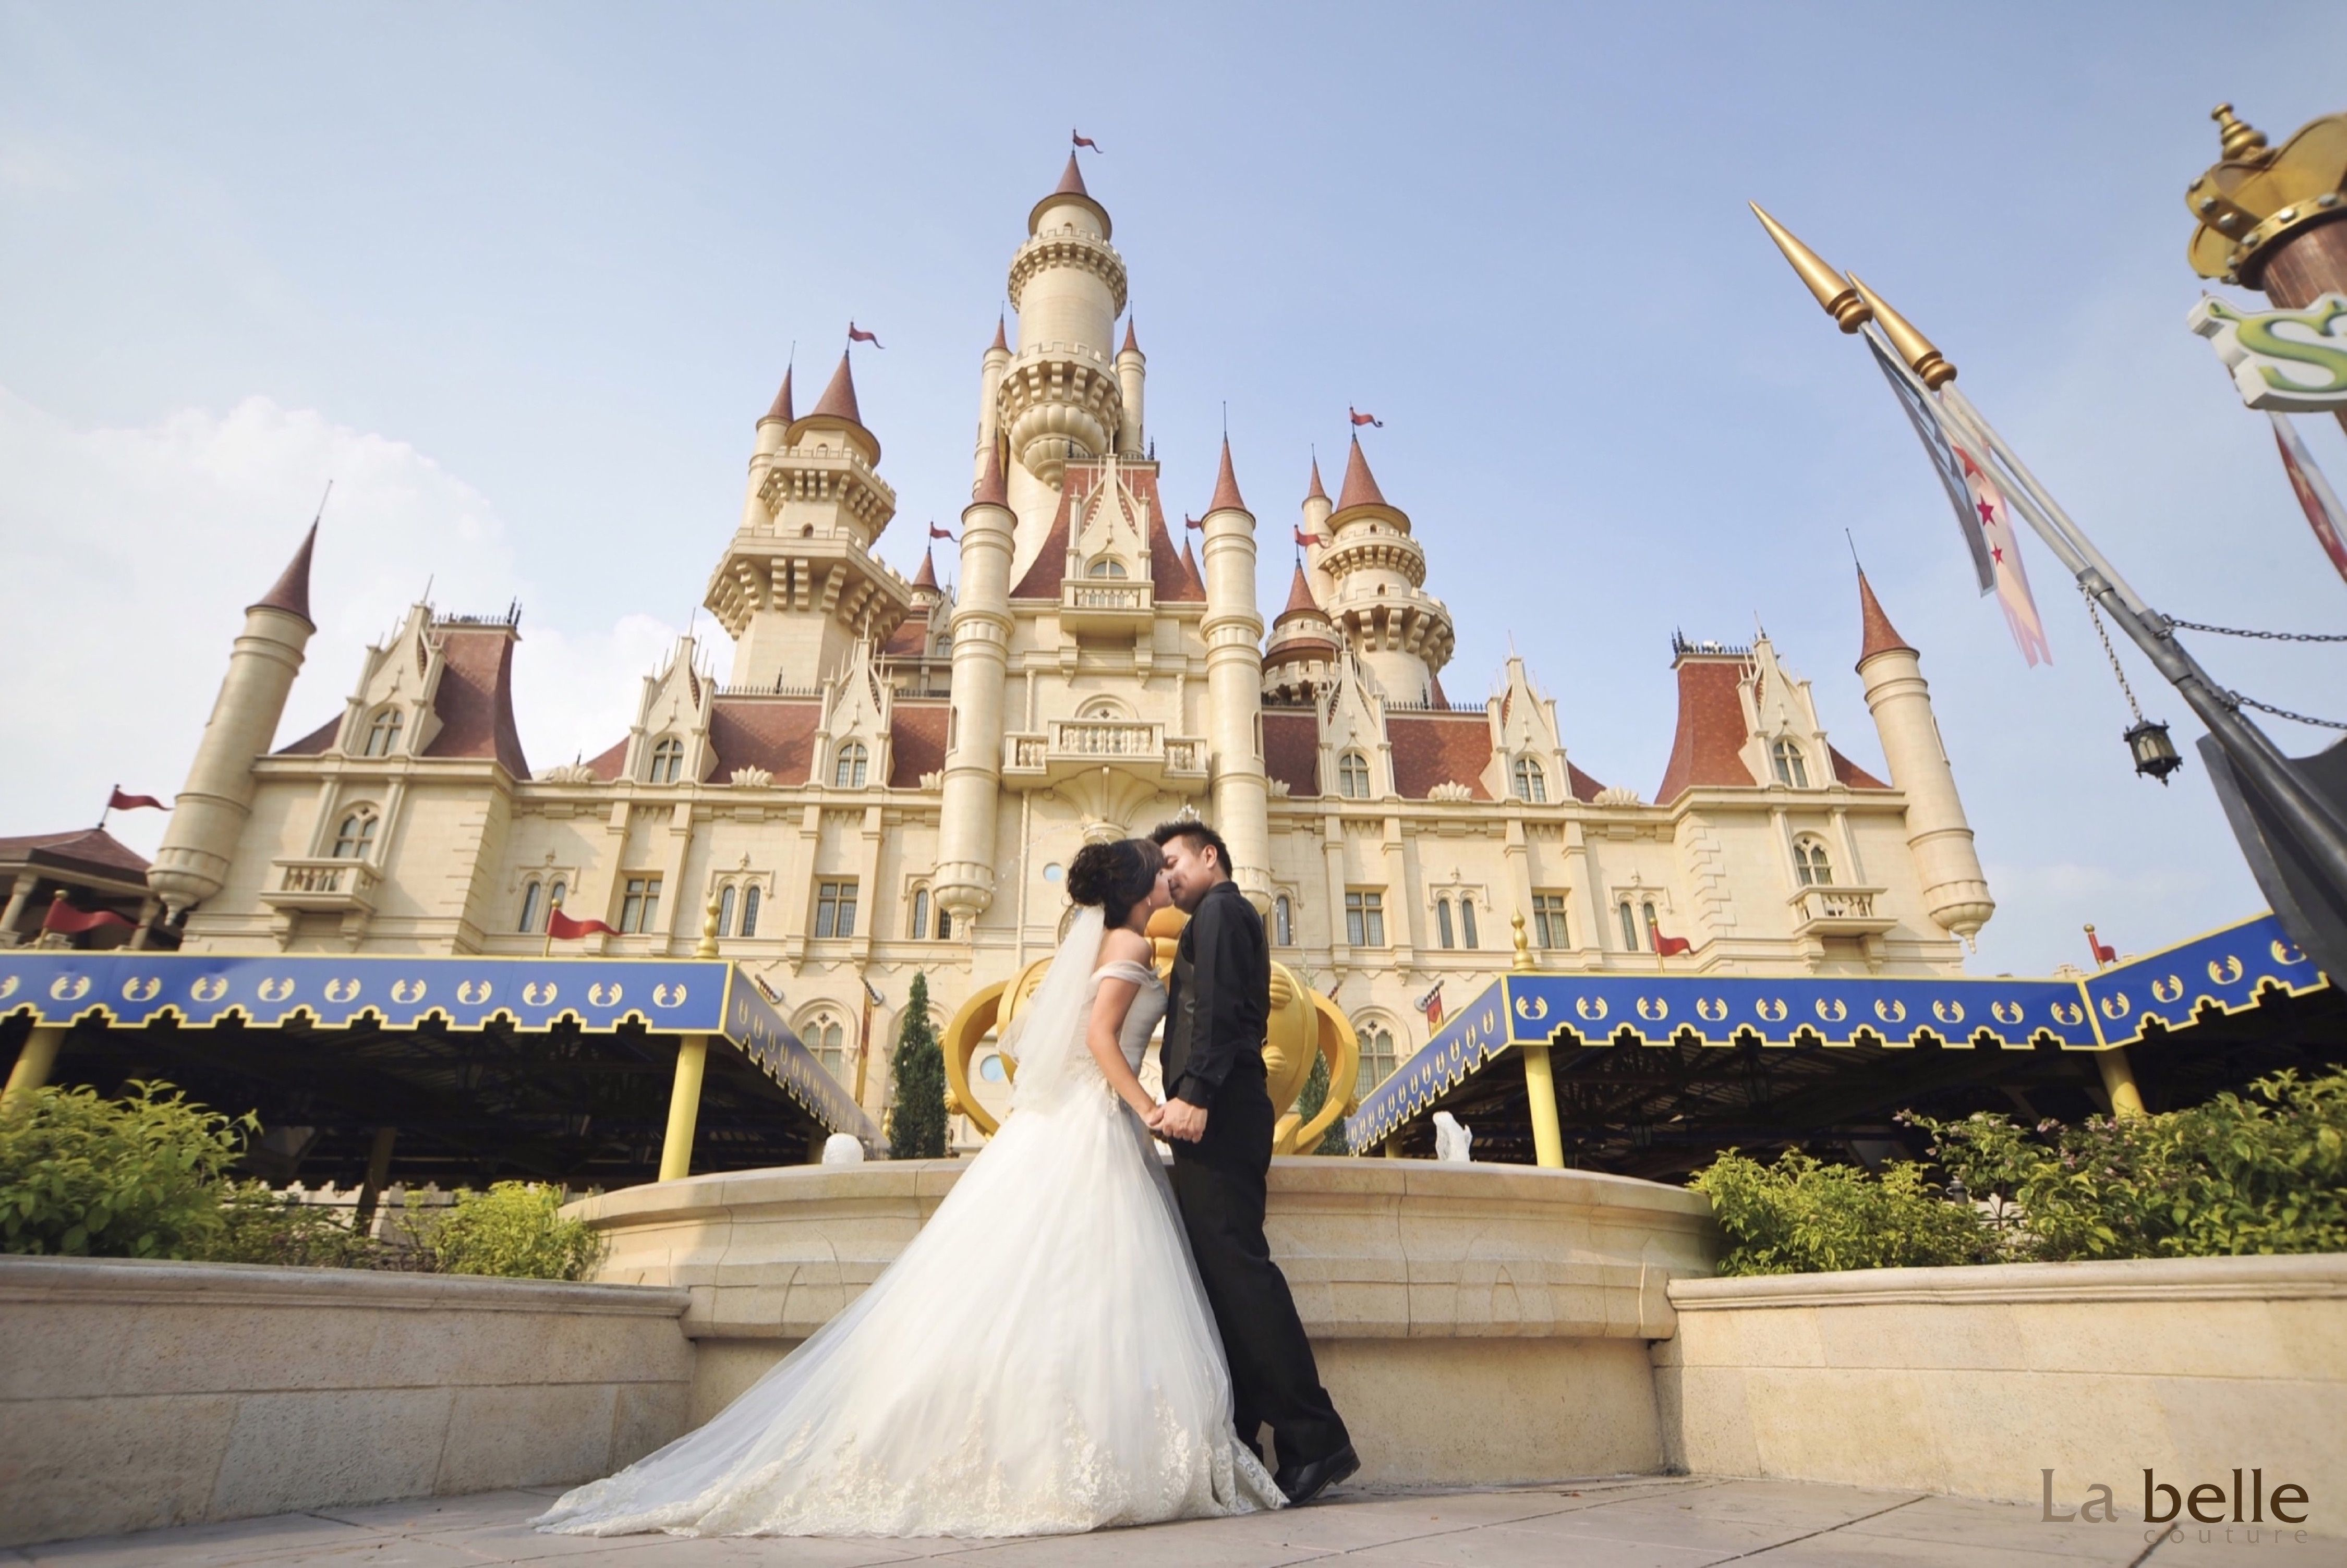 Whoever Said Singapore Does Not Have A Beautiful Castle For Fairytale Wedding Photoshoot It